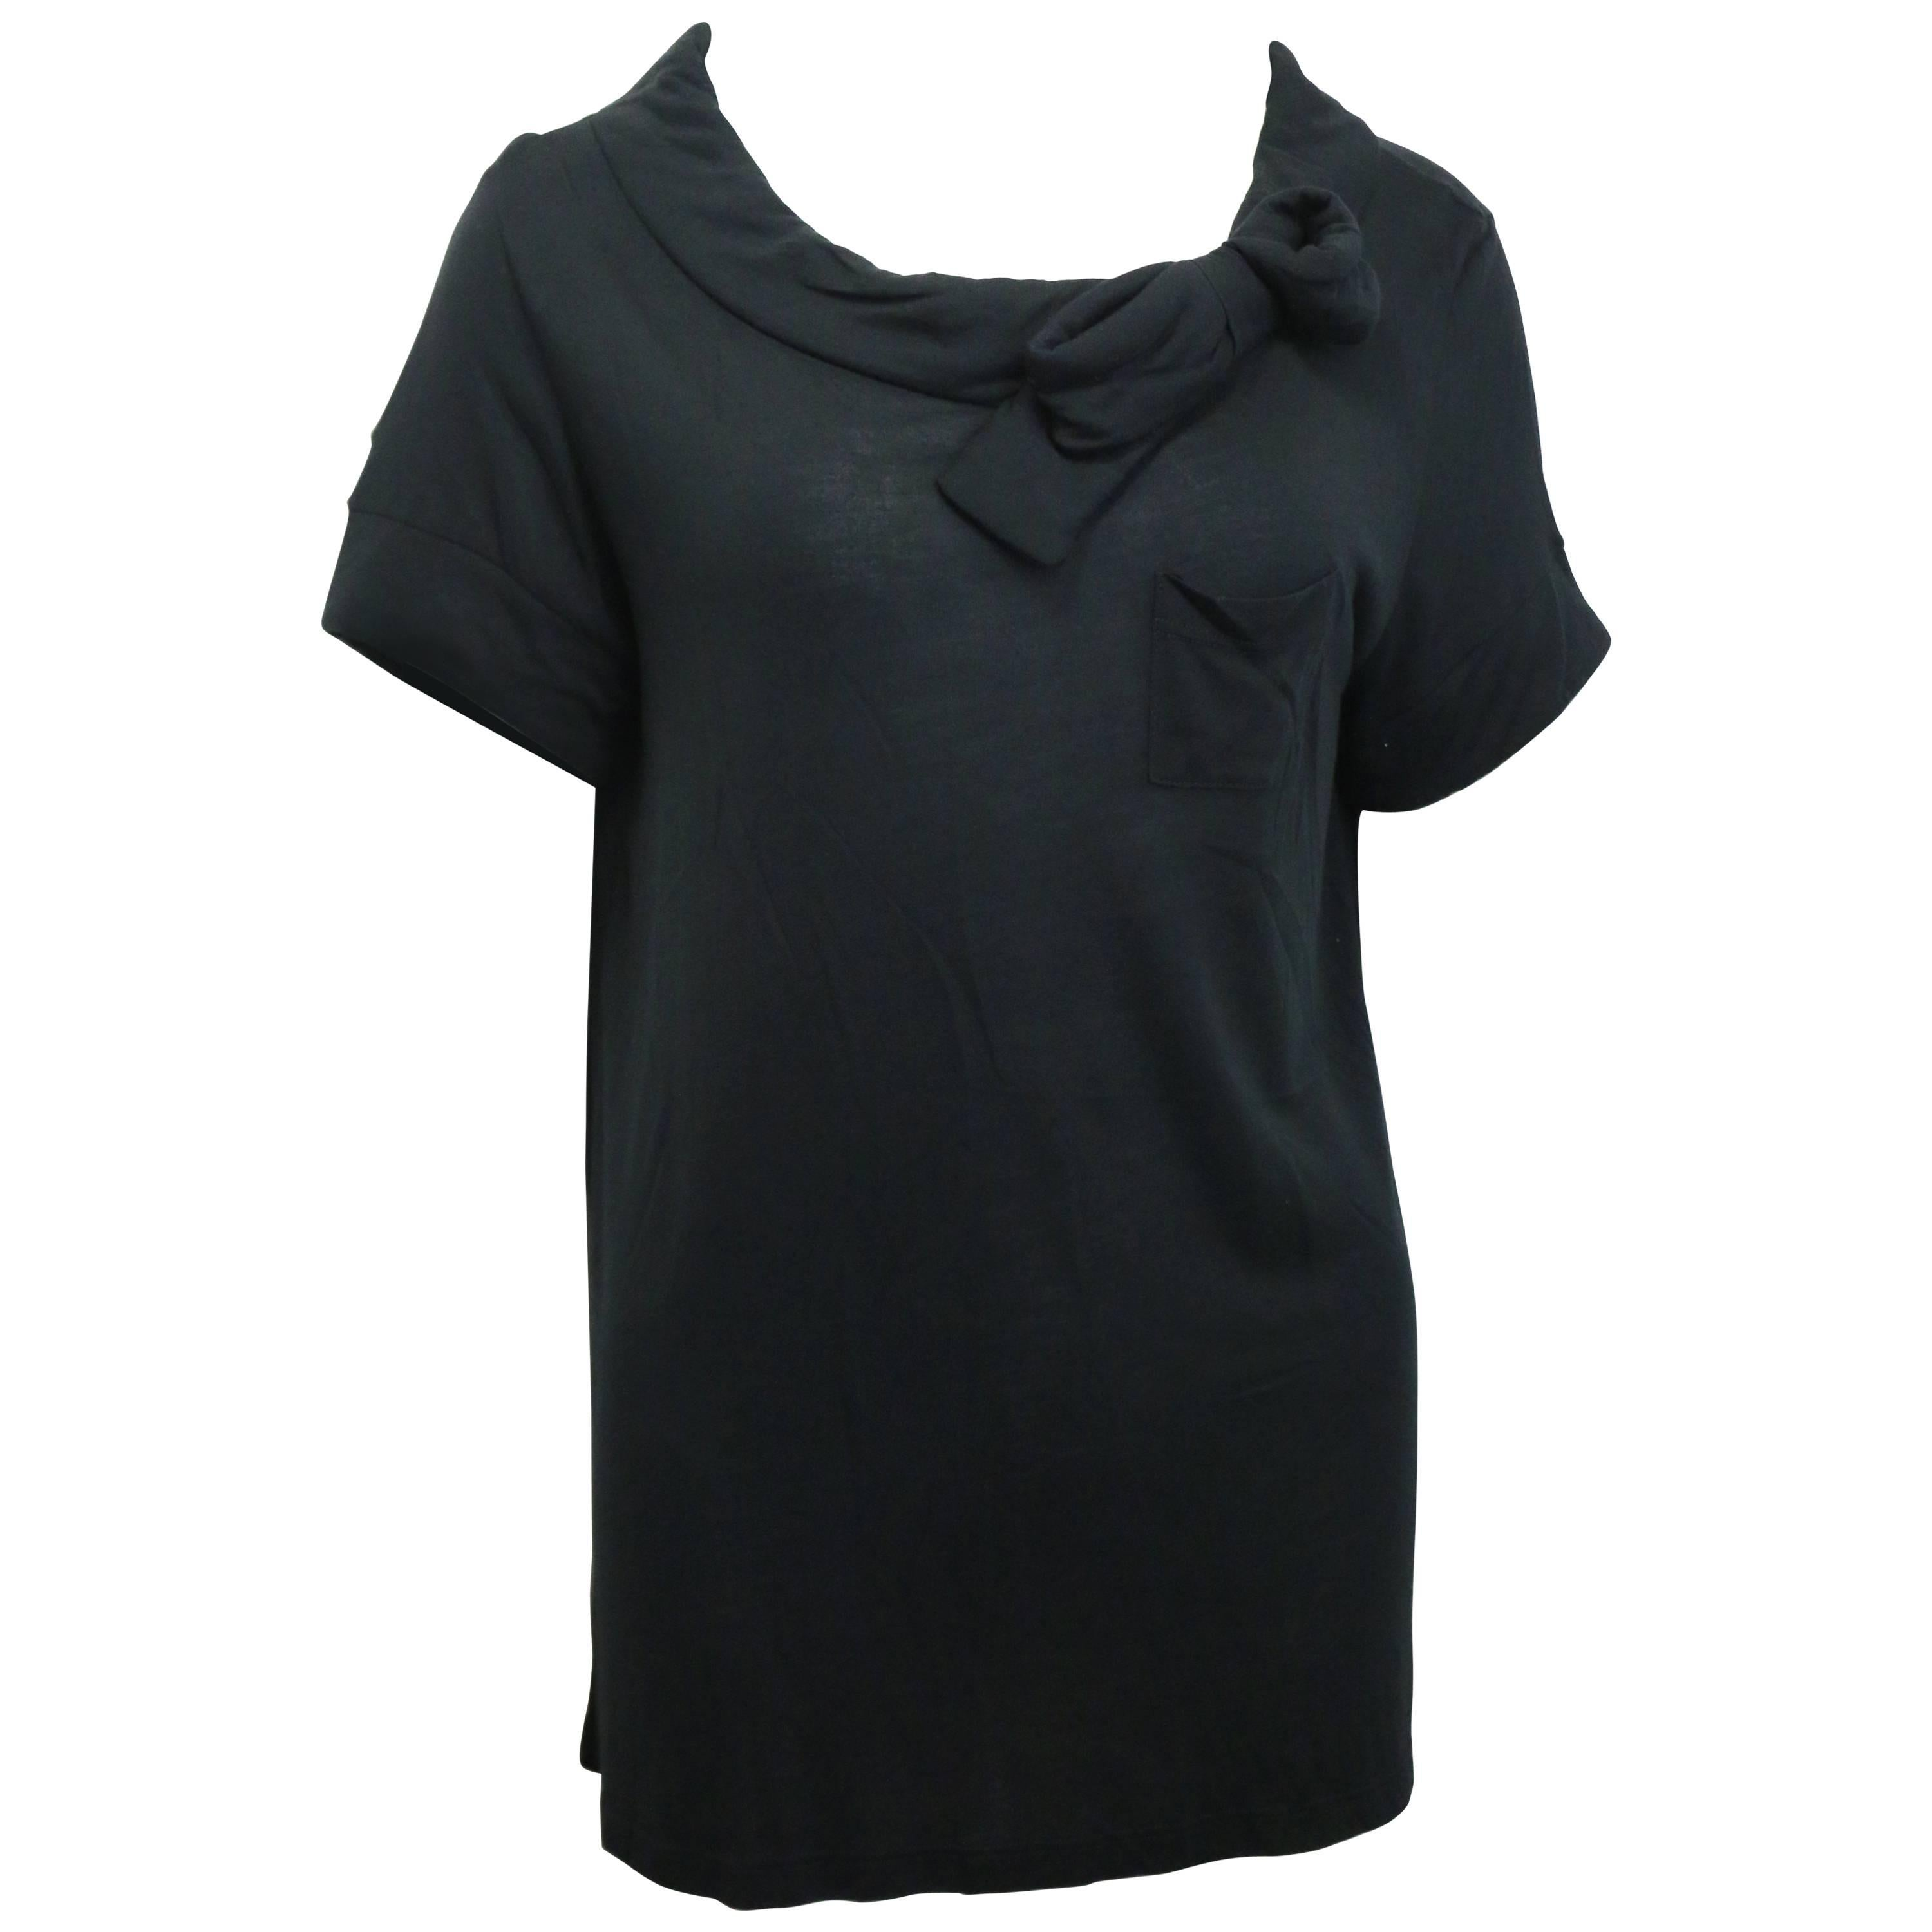 Red Valentino Black Cotton with Bow T-Shirt